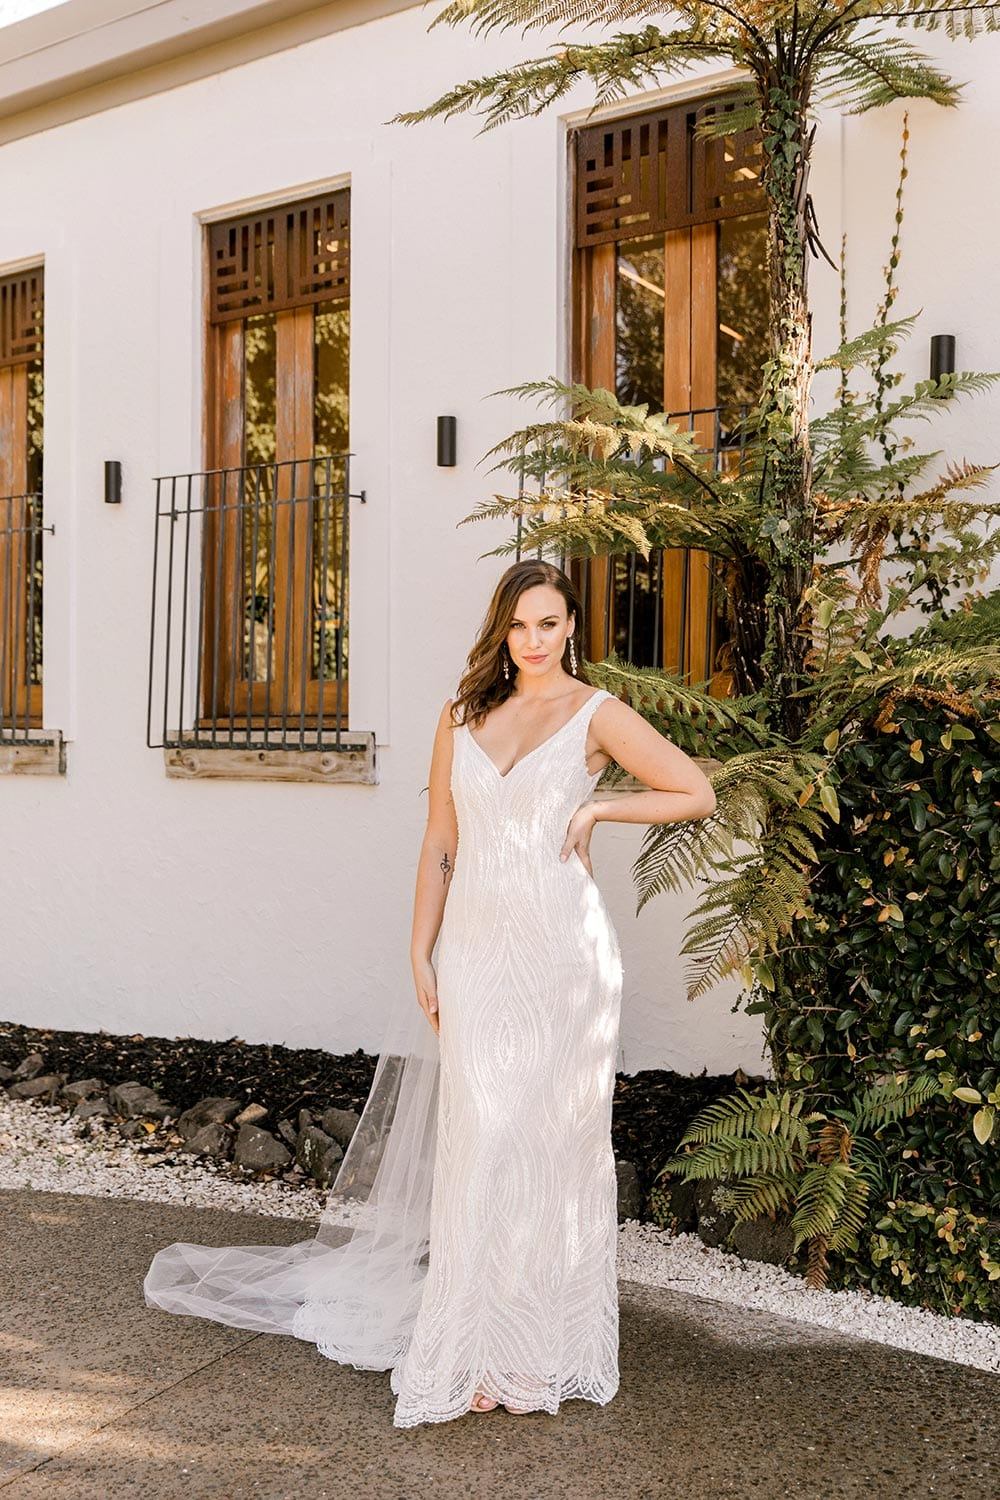 Kiera Wedding Dress from Vinka Design. Beautifully beaded lace wedding dress. Deep V-neckline both front and back is complemented with delicate sheer lace shoulder detail & structured bodice. Full length portrait of dress with train to side. Photographed at Tui Hills.